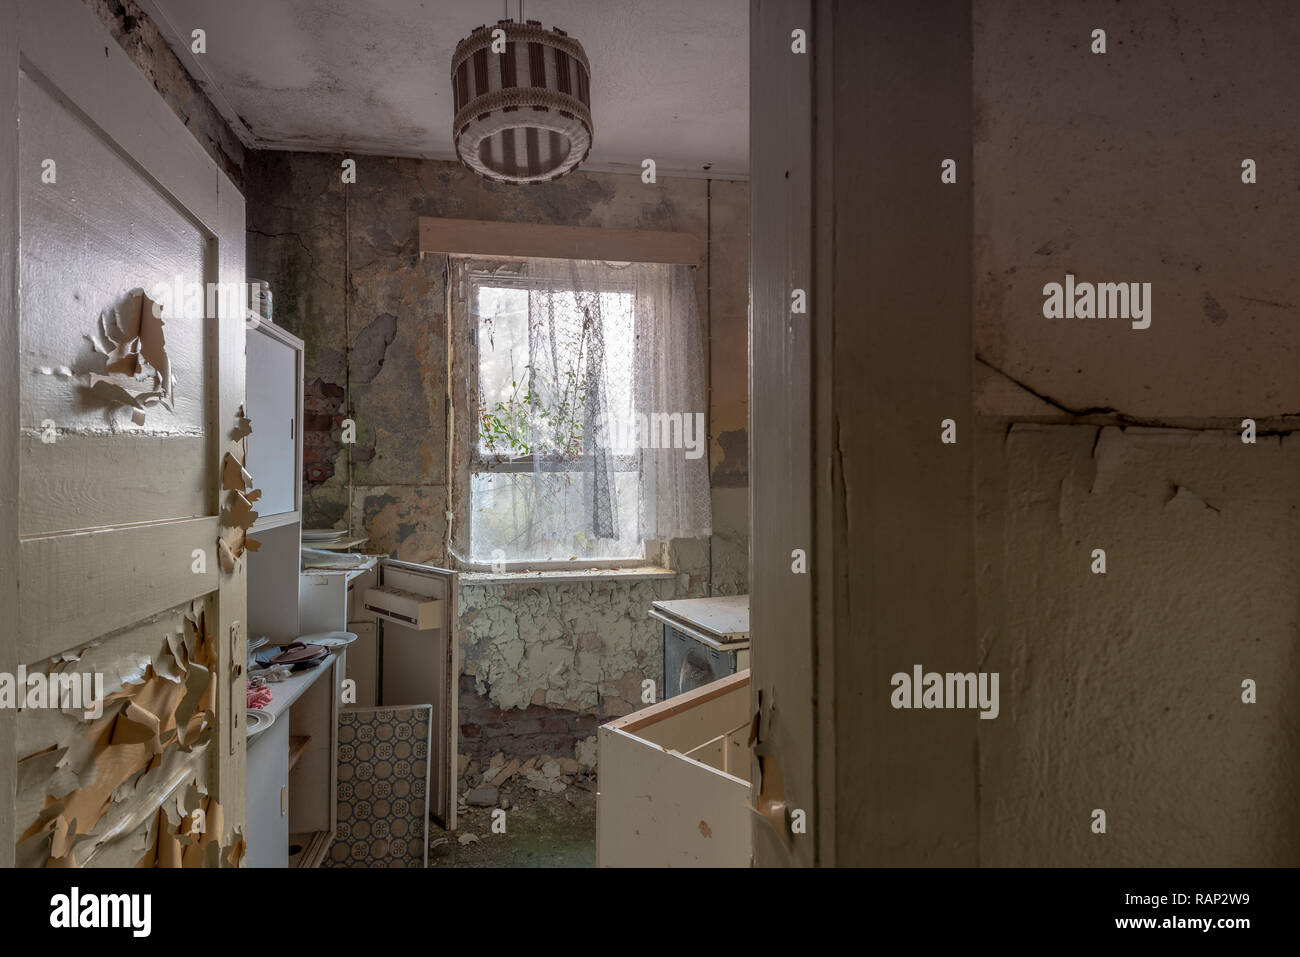 Prerow, Germany - December 30, 2018: View into the kitchen of one of the barracks of the former training centre of the Gesellschaft für Sport und Tech - Stock Image